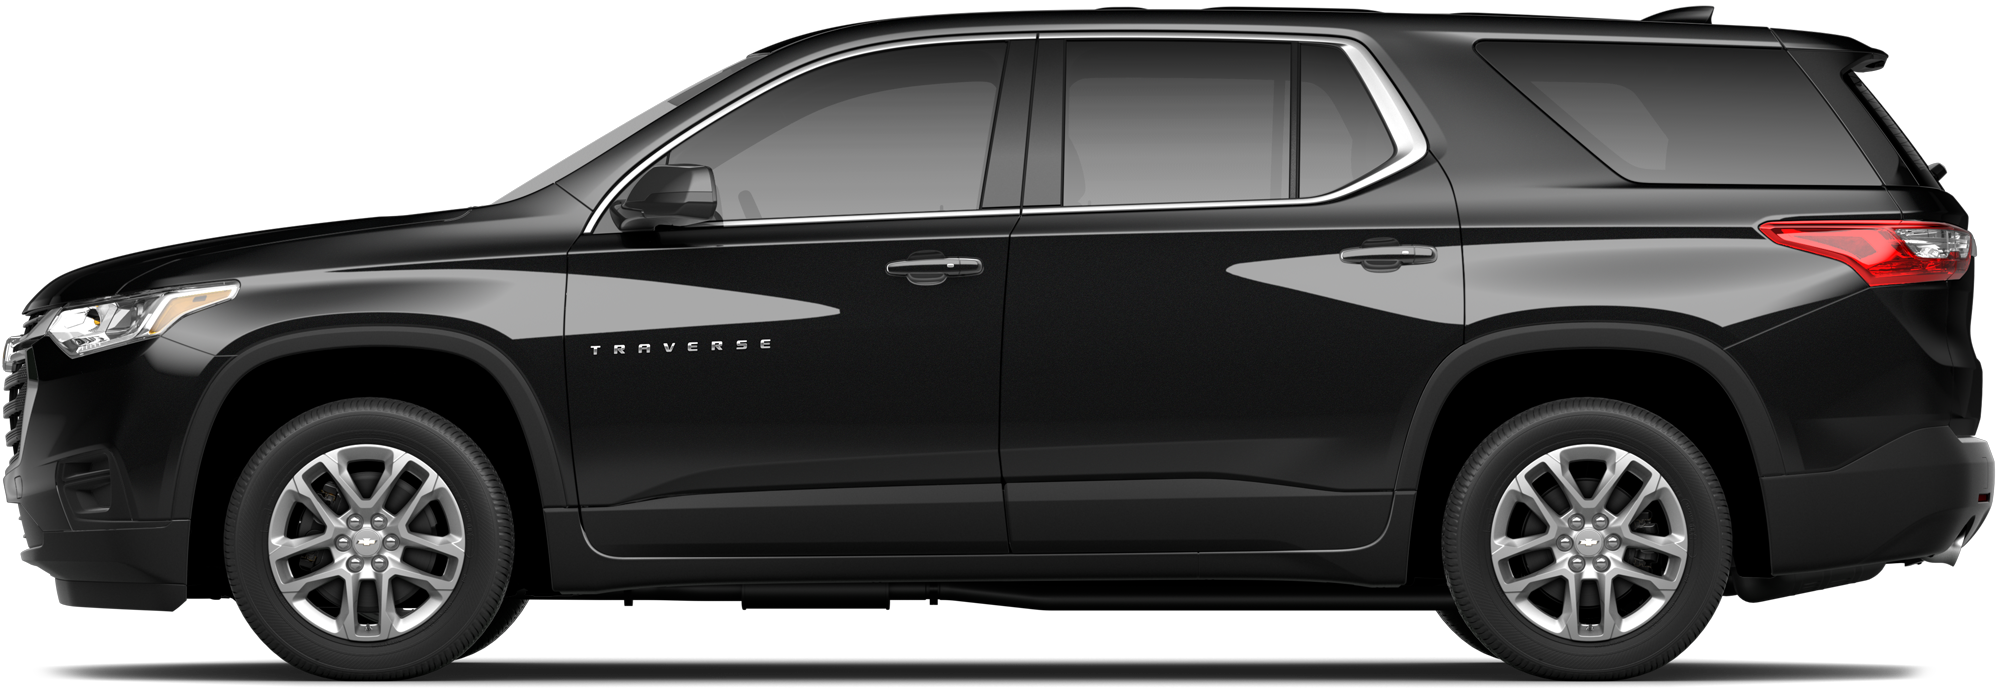 2020 Chevrolet Traverse SUV L